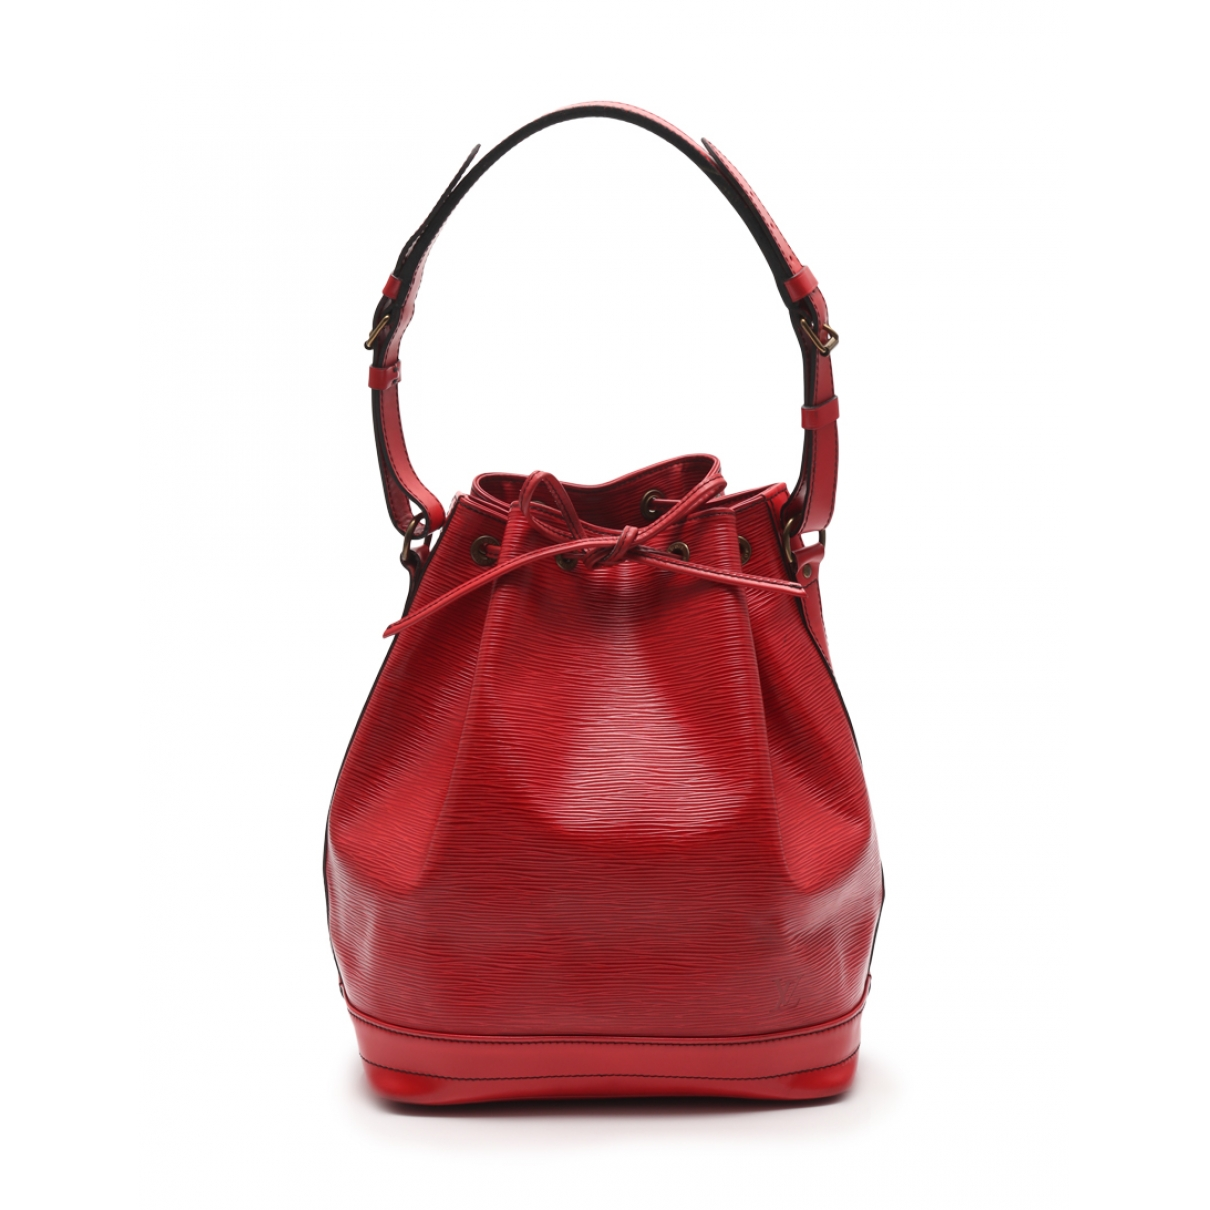 Louis Vuitton No?? Red Leather handbag for Women \N